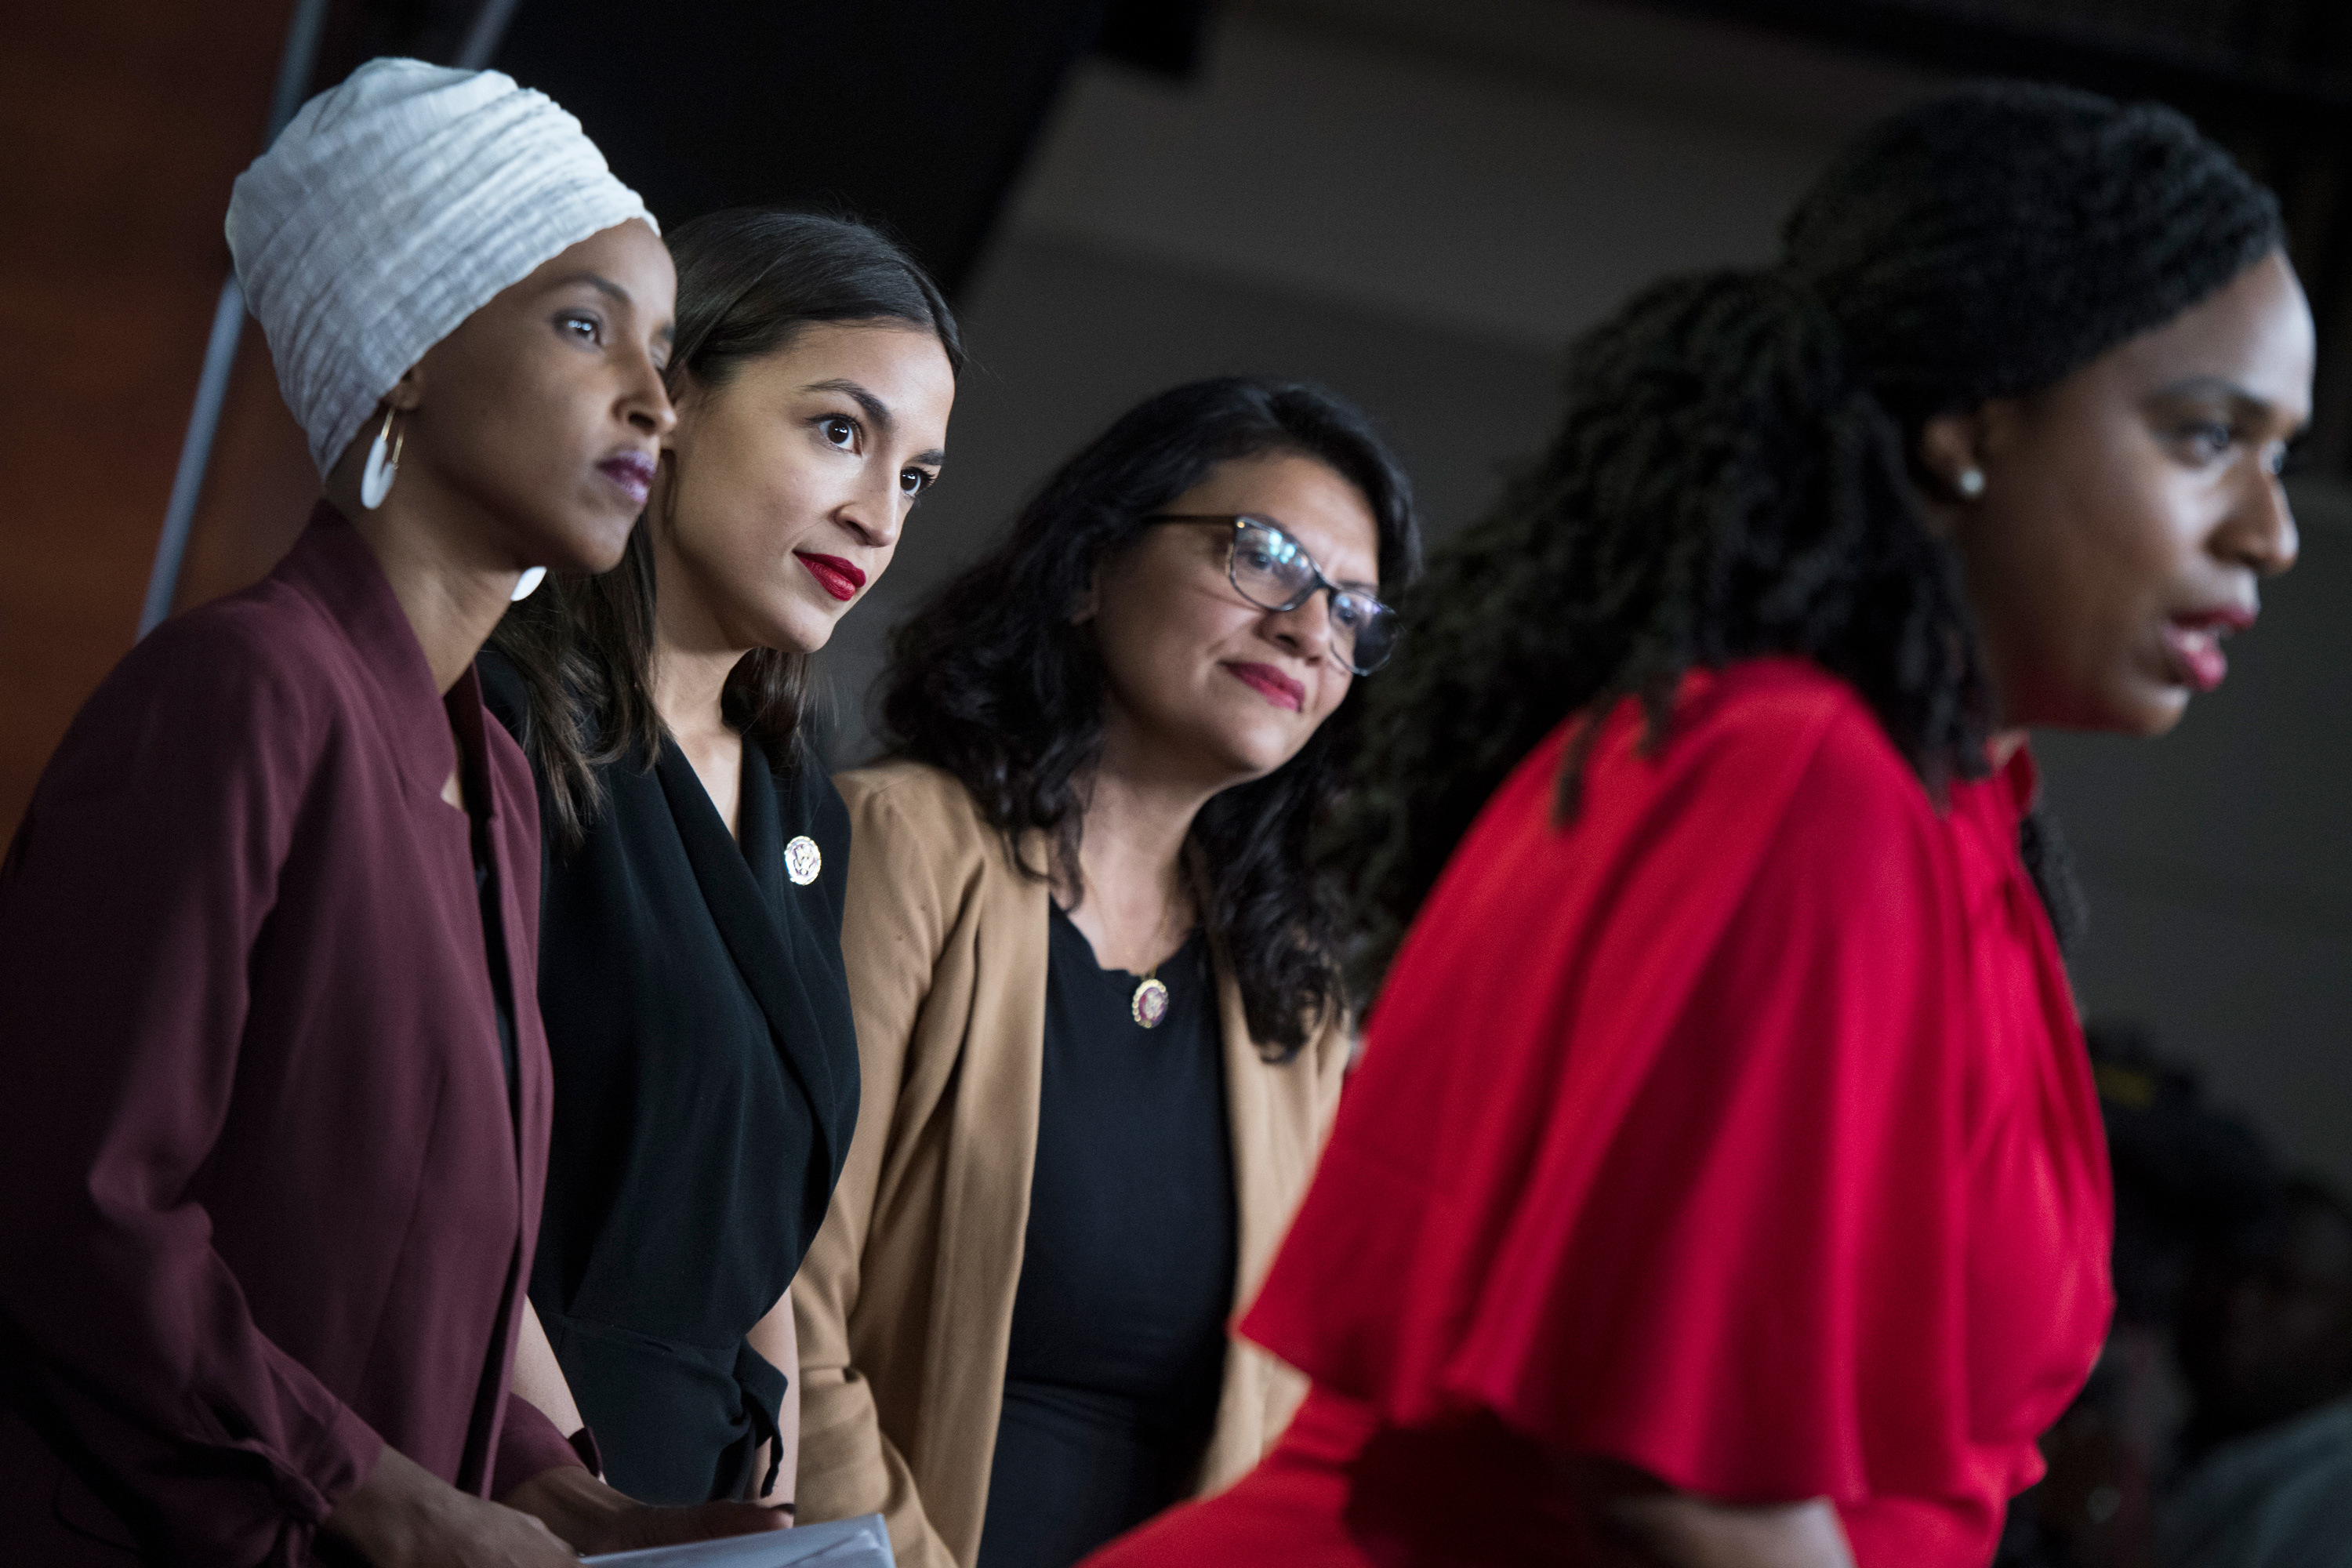 From left, Reps. Ilhan Omar, D-Minn., Alexandria Ocasio-Cortez, D-N.Y., Rashida Tlaib, D-Mich., and Ayanna Pressley, D-Mass., conduct a news conference in the Capitol Visitor Center responding to negative comments by President Trump that were directed at the freshman House Democrats on Monday, July 15, 2019. (Photo By Tom Williams/CQ Roll Call via AP Images)